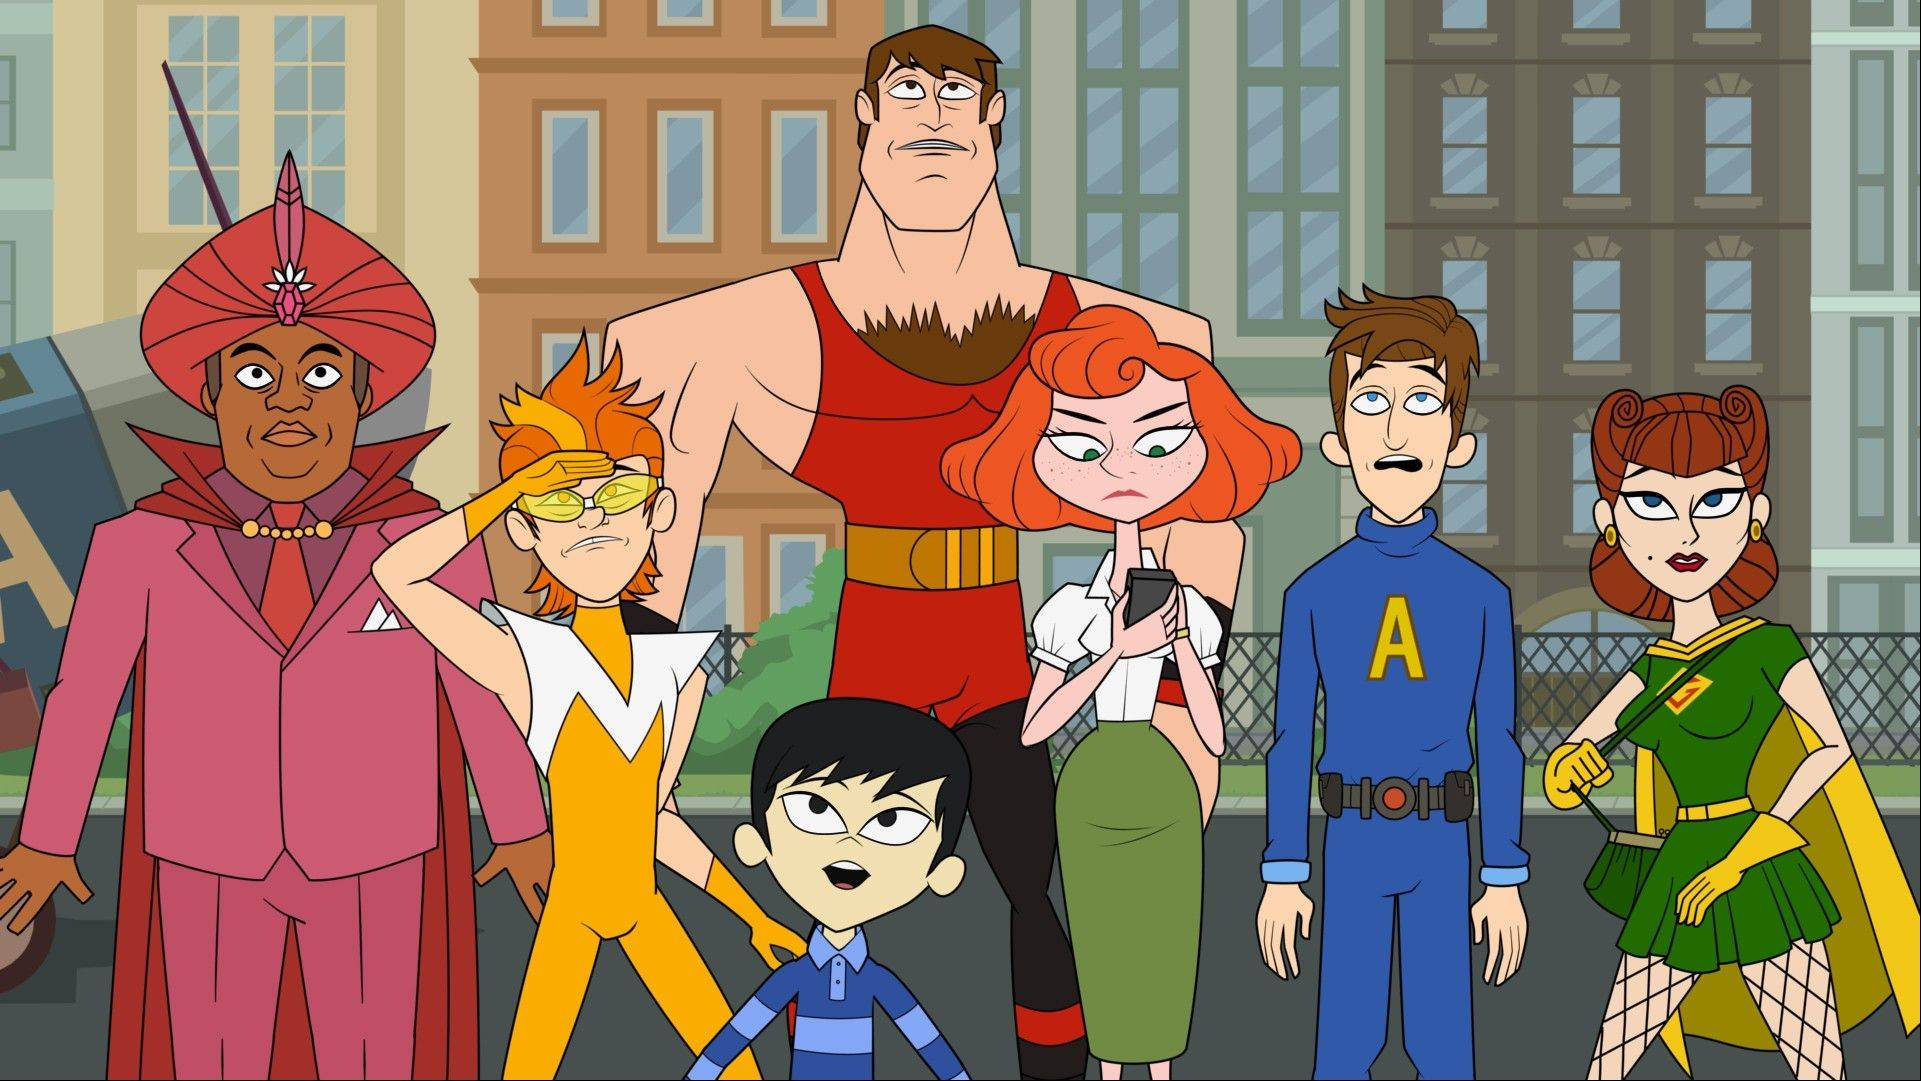 "Characters from the animated series ""The Awesomes,"" from left, Impresario, voiced by Kenan Thompson, Frantic, voiced by Taran Killam, Tim, aka Sumo, voiced by Bobby Lee, foreground, Muscleman, voiced by Ike Barinholtz, Concierge, voiced by Emily Spivey, Prock, voiced by Seth Meyers and Gadget Gal, voiced by Paula Pell. The animated series premieres Aug. 1 on Hulu."